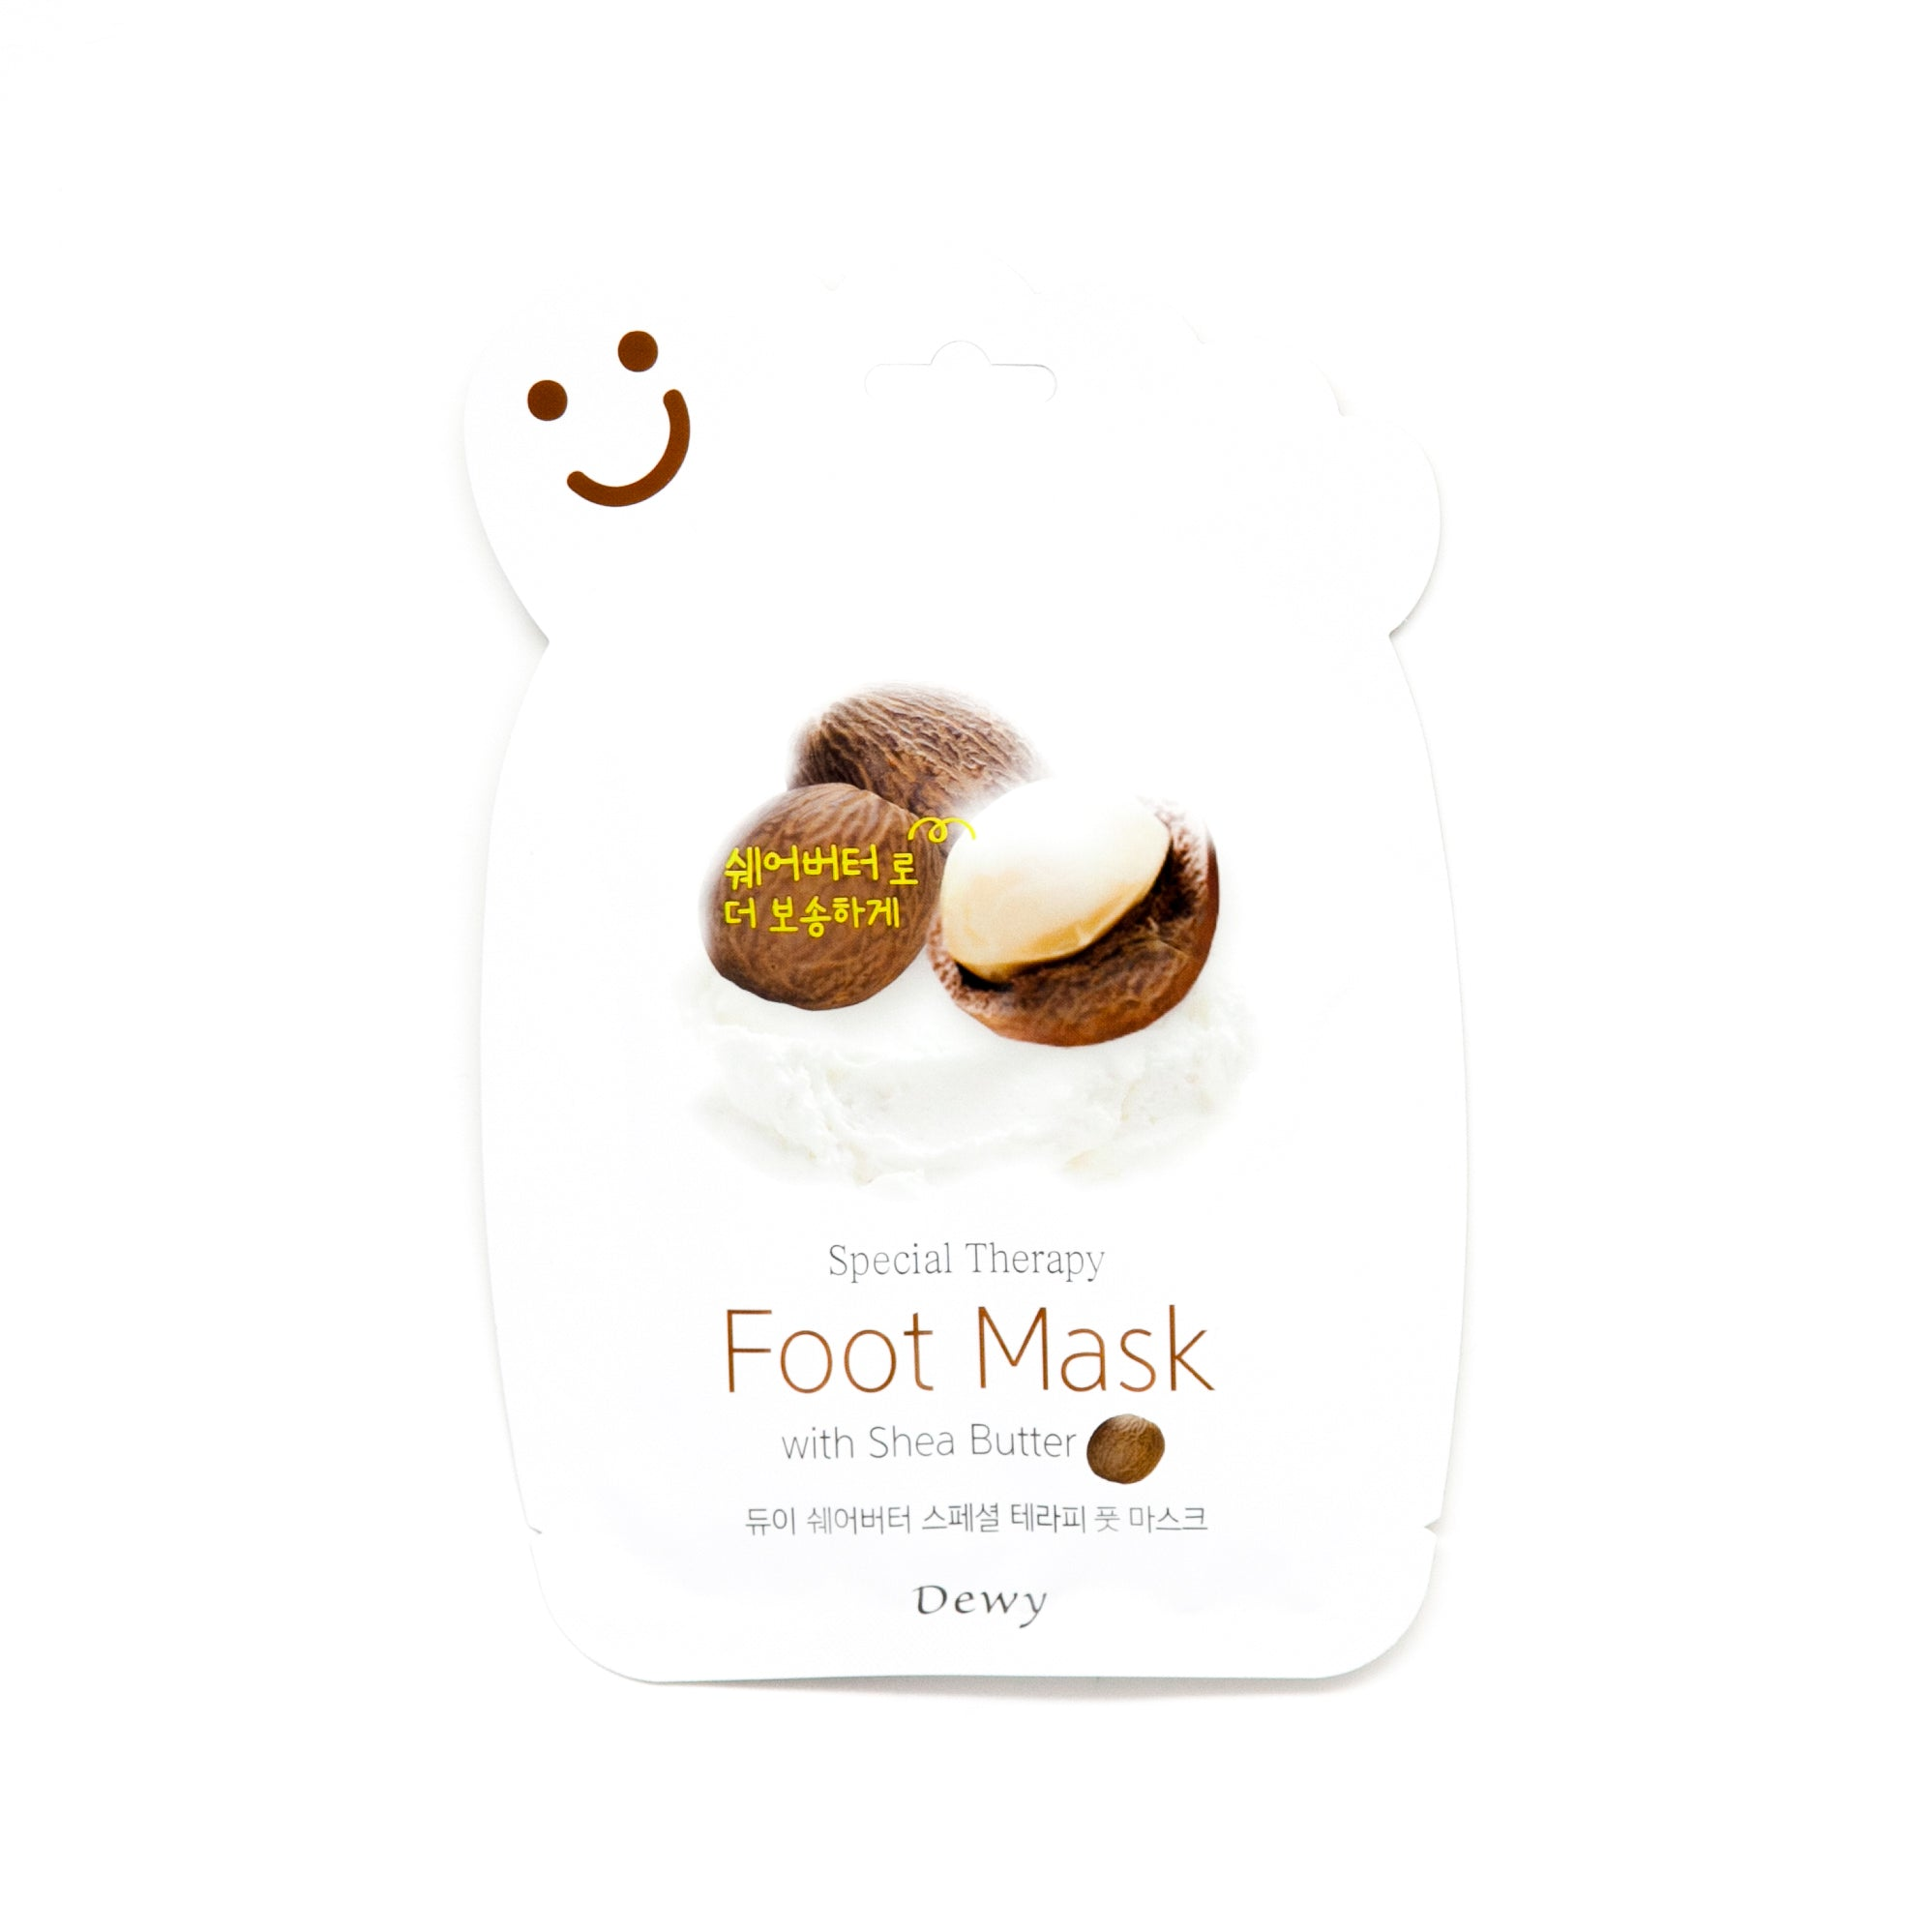 shea butter infused cotton foot mask socks to alleviate dry skin on feet